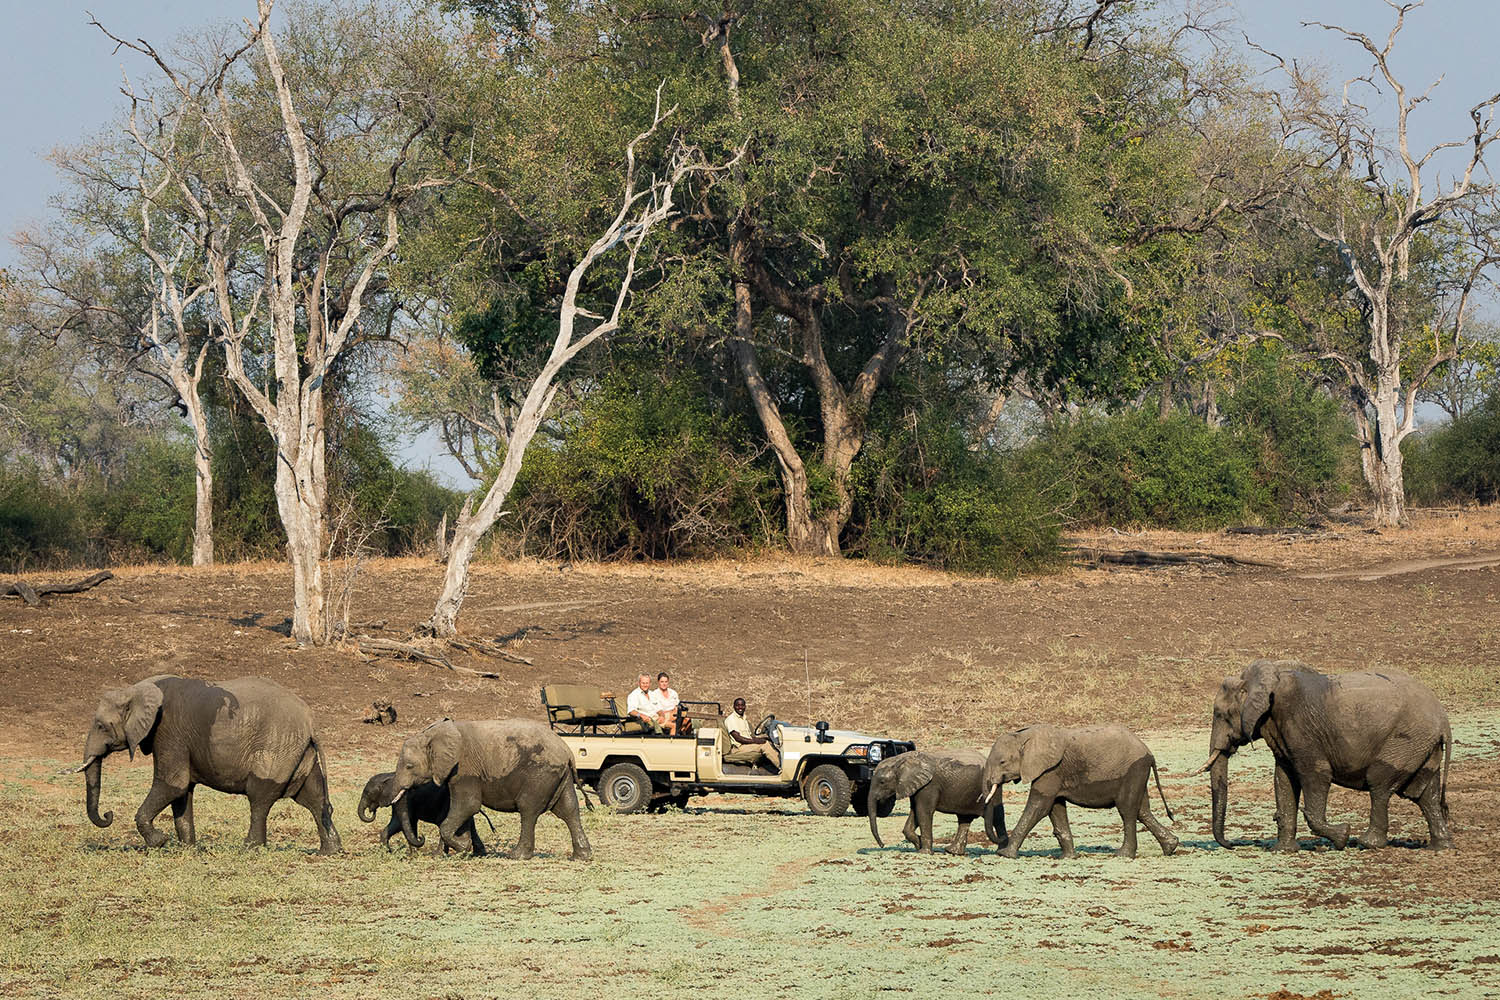 nkwali-zambia-in-style-safari-packages-south-luangwa-national-park-tours-game-drives